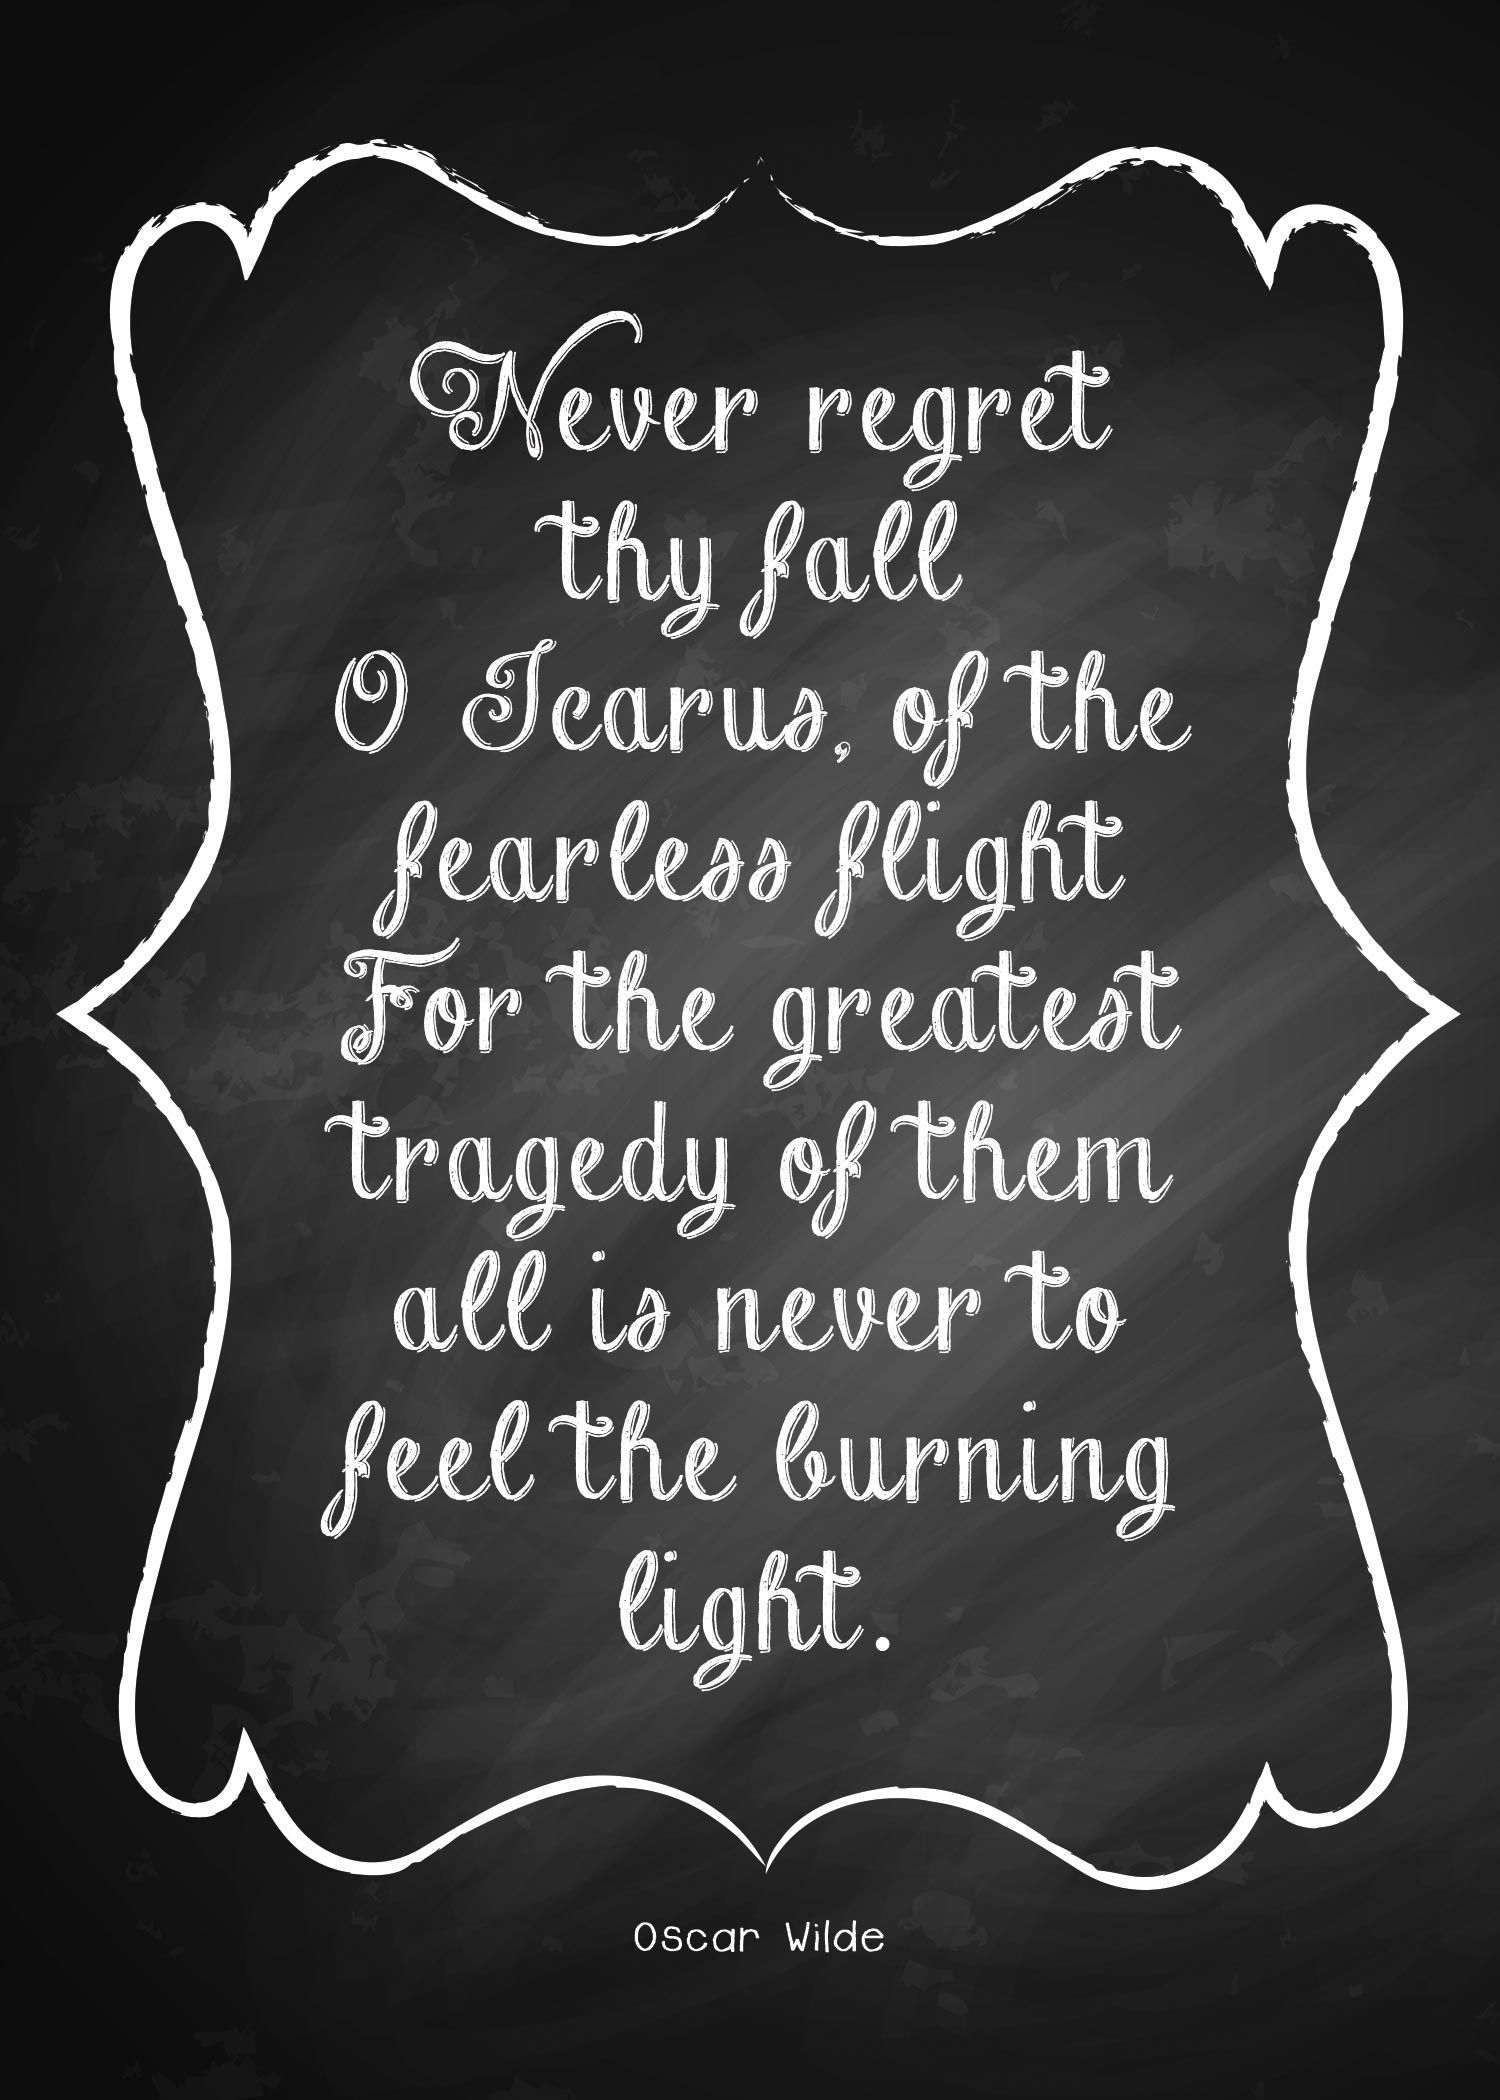 never regret thy fall o icarus of the fearless flight oscar wilde quote aesthetic. Black Bedroom Furniture Sets. Home Design Ideas